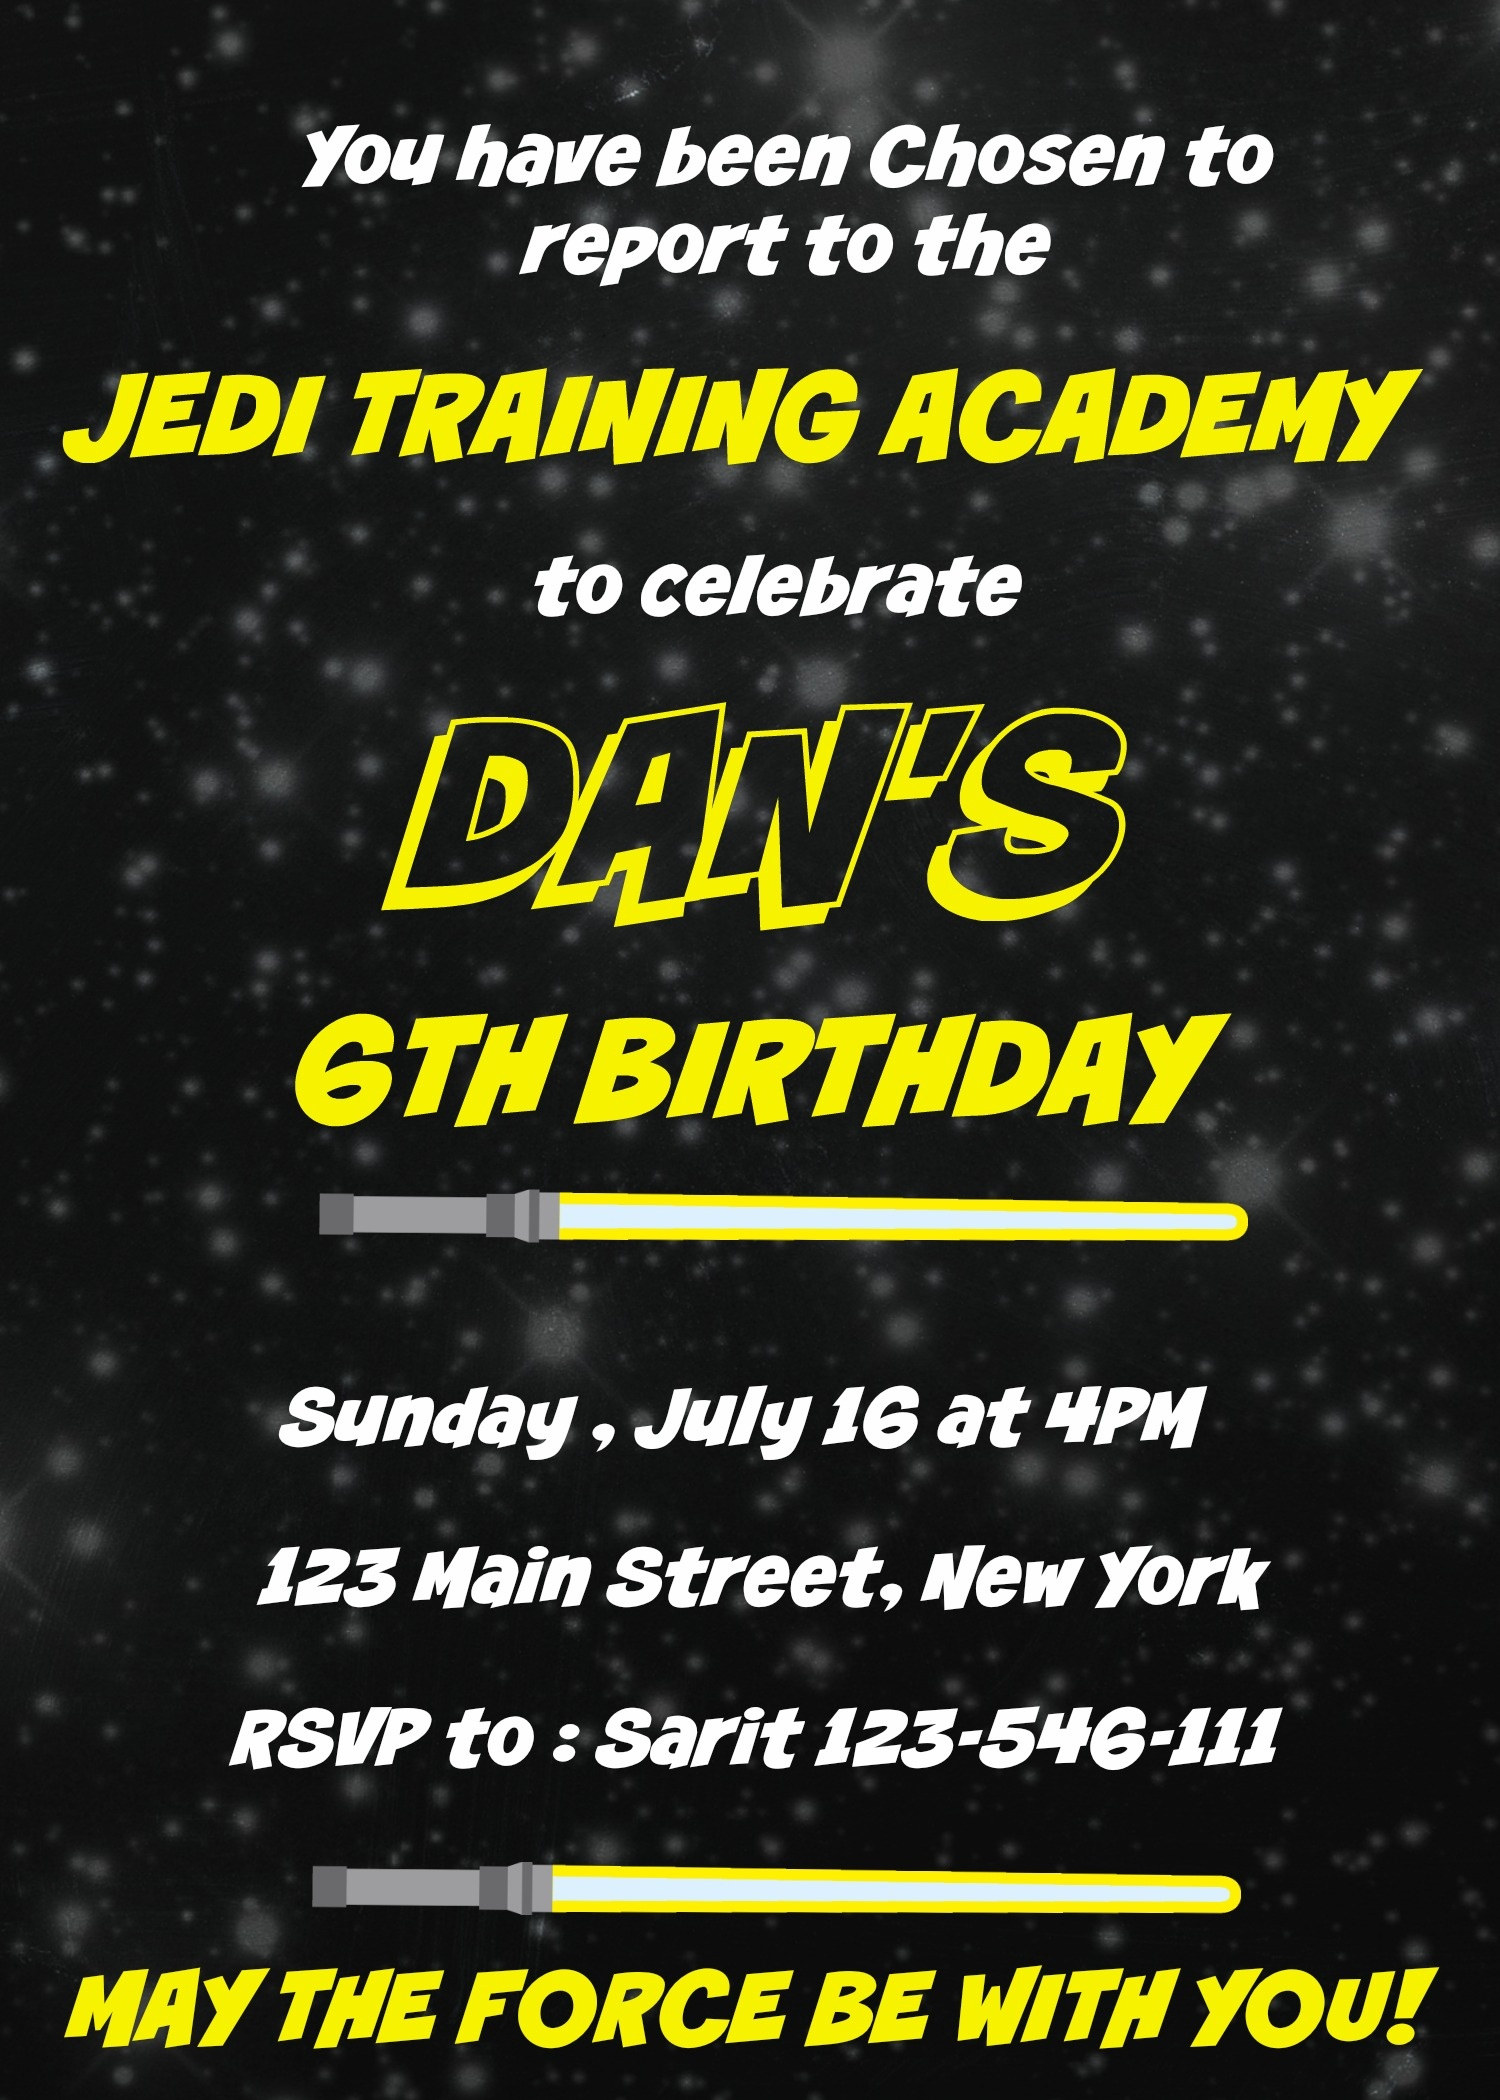 Star Wars Birthday Party Ideas - My Practical Birthday Guide - Free Printable Star Wars Baby Shower Invites